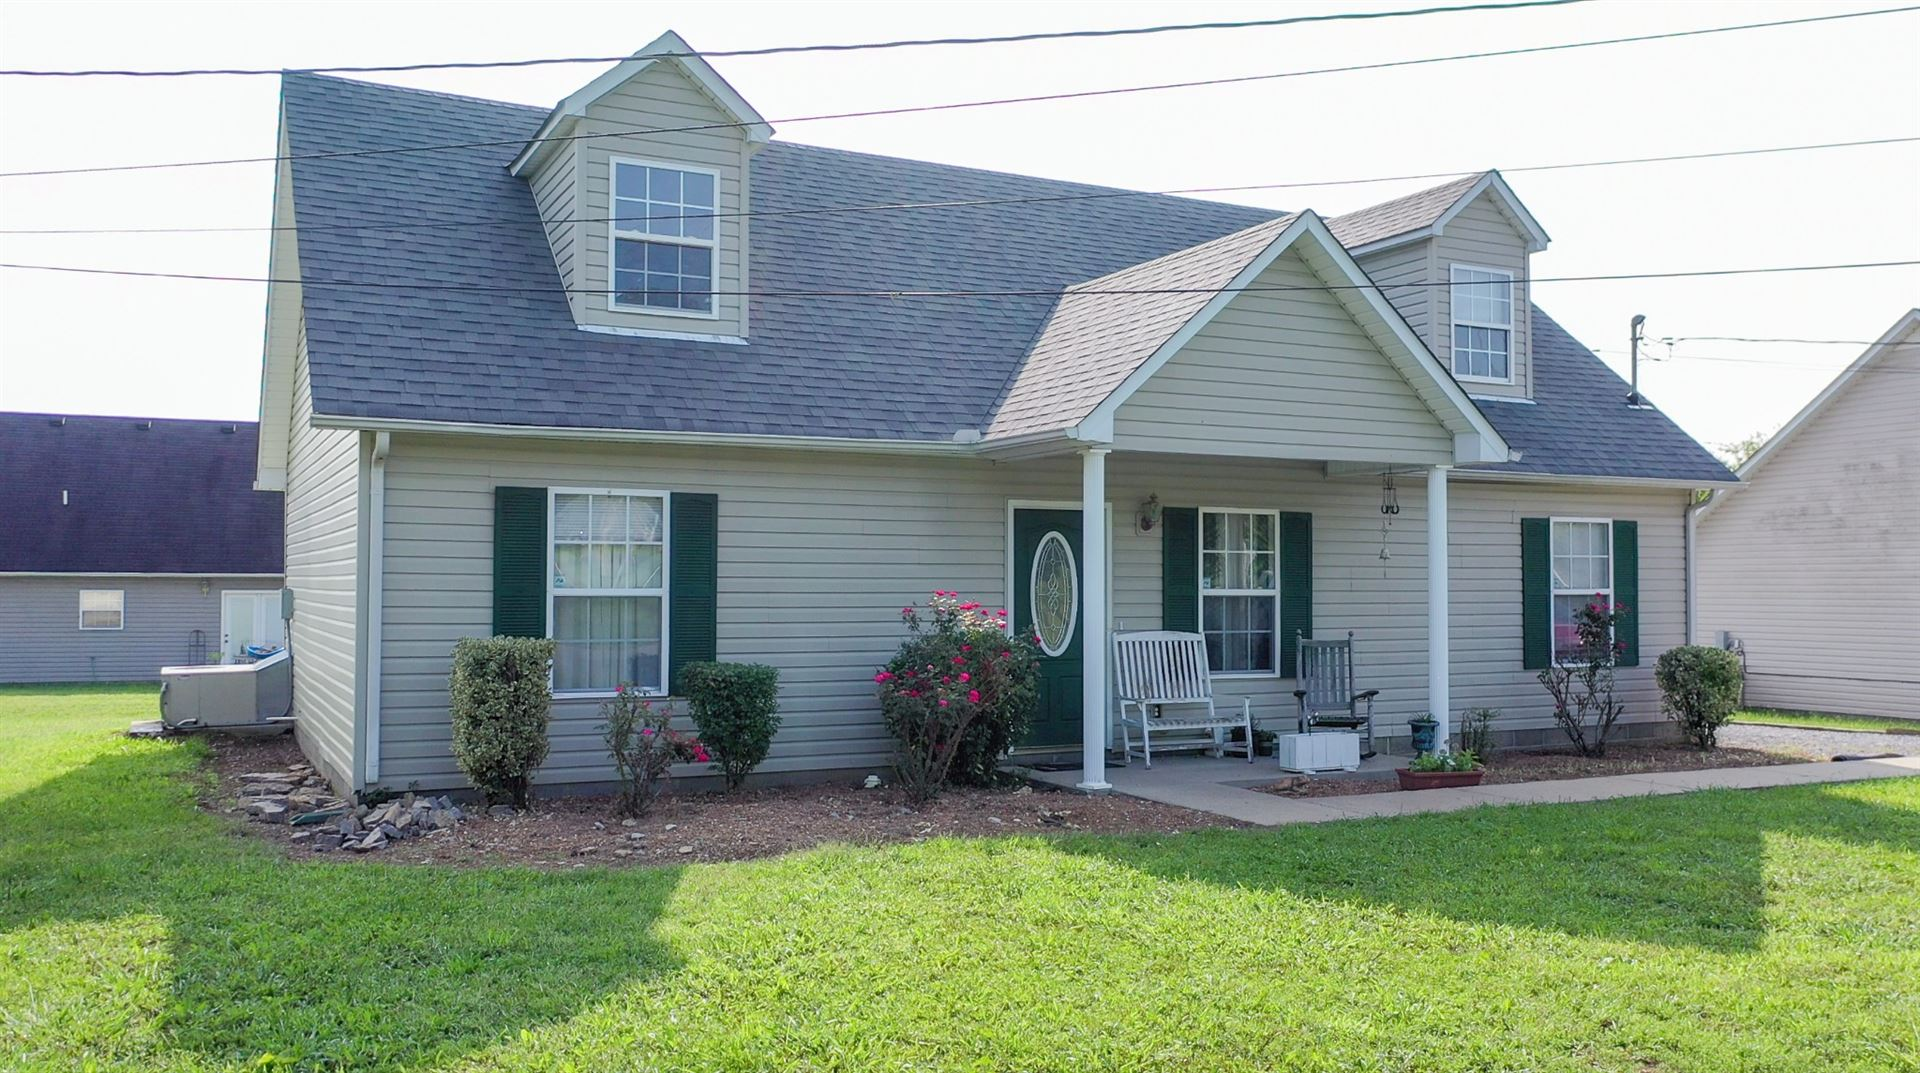 147 Hendon Memorial Rd, Shelbyville, TN 37160 - MLS#: 2190744